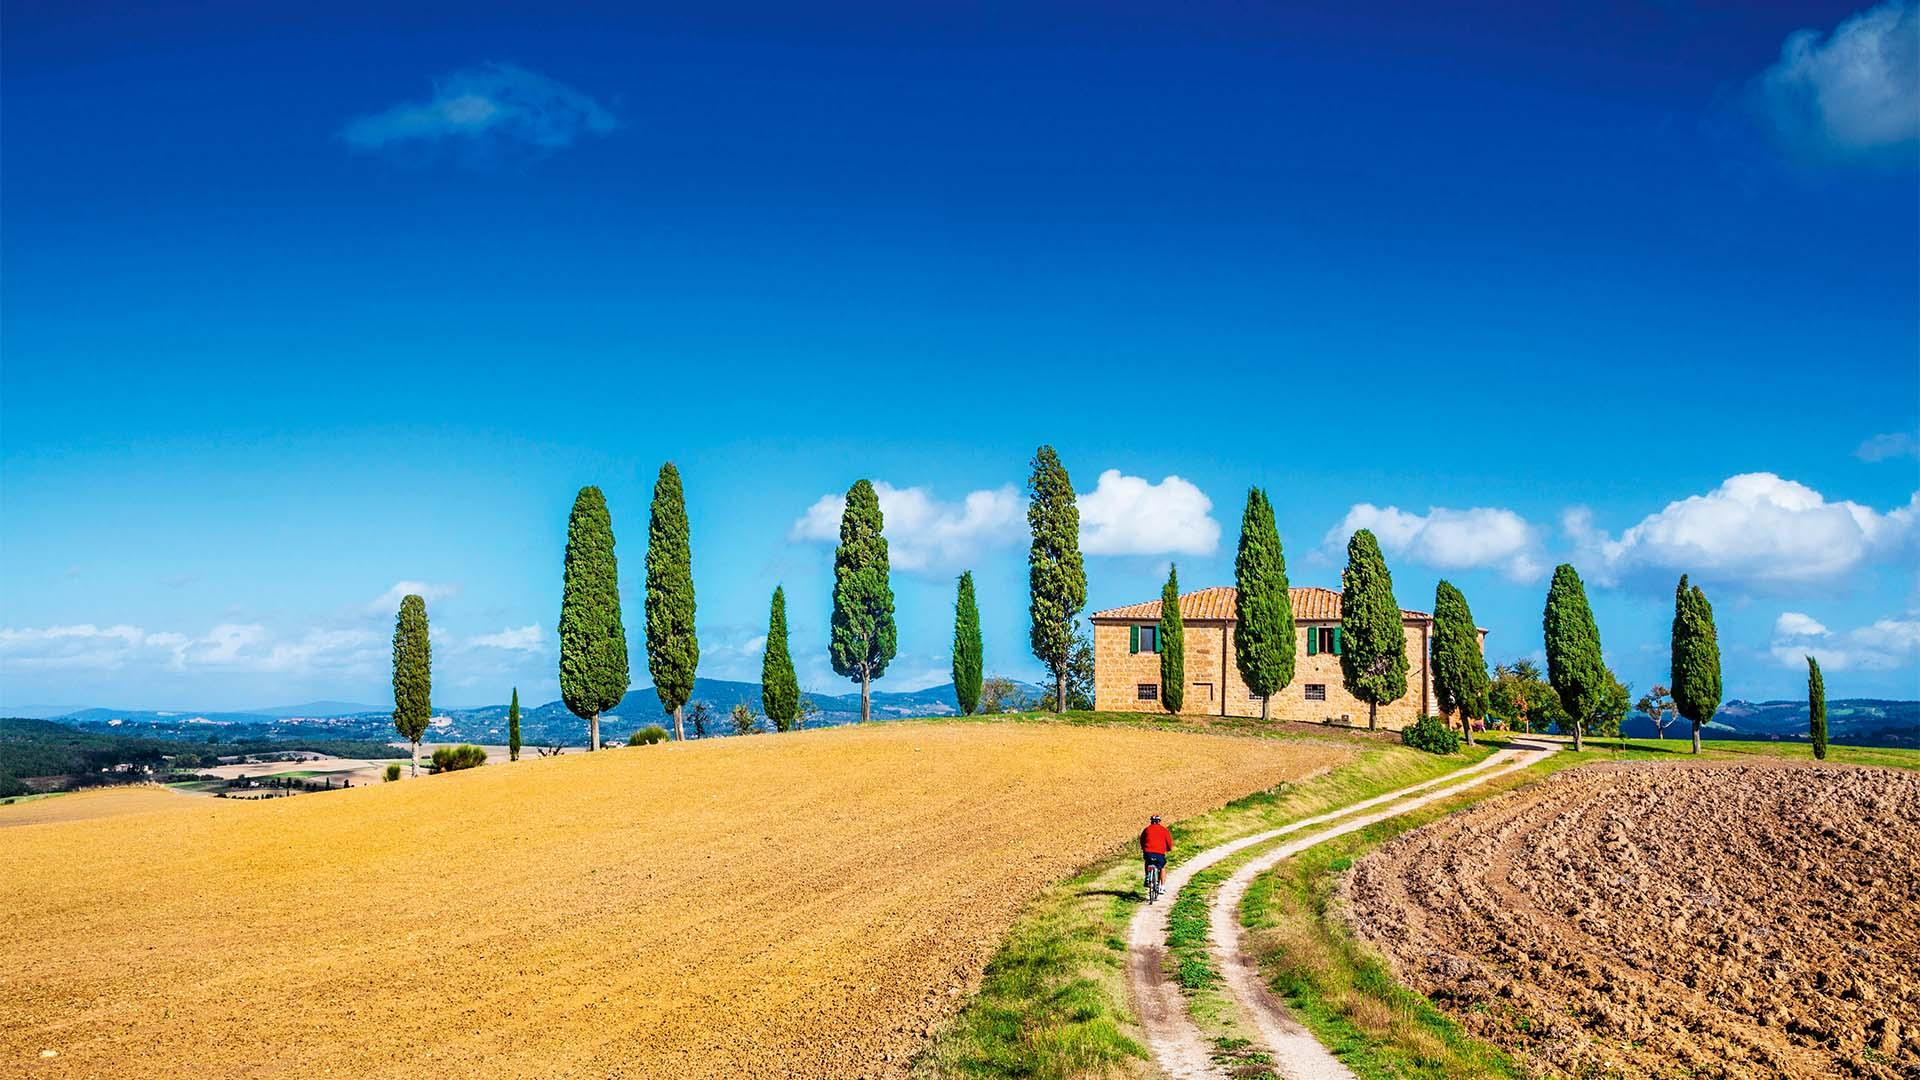 Classic panorama view of scenic Tuscany landscape with farmhouse and male cyclist on a country road on a beautiful sunny day in summer, Italy